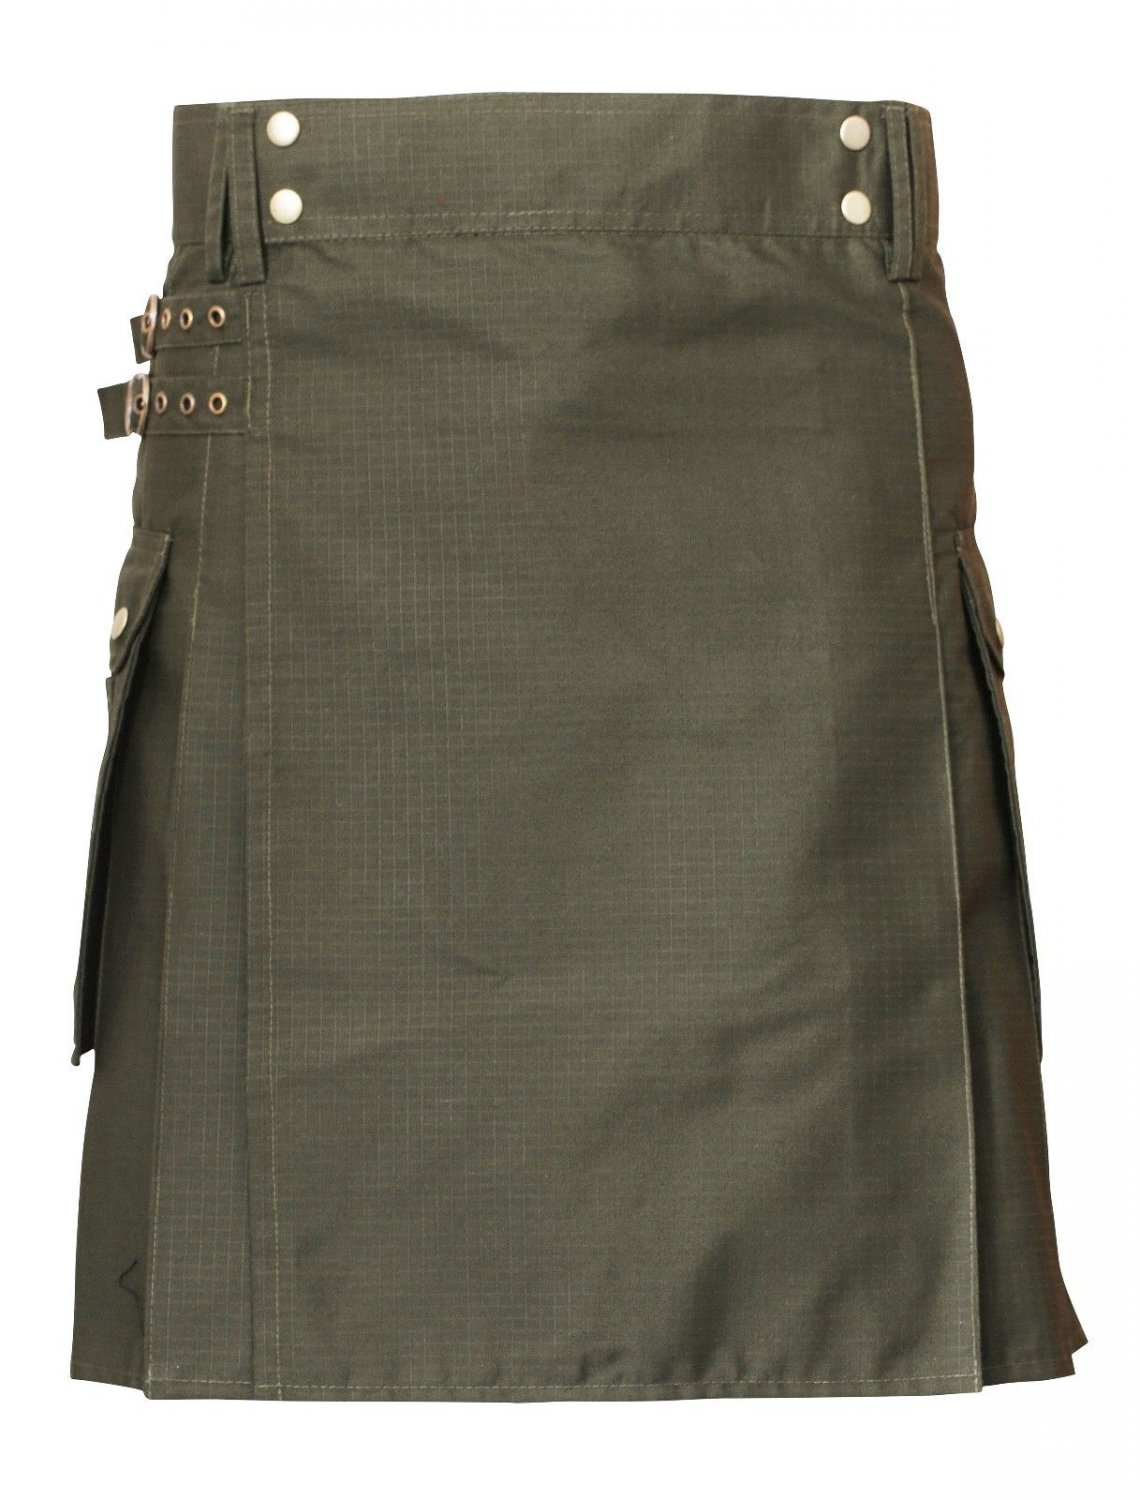 52 Size Traditional Scottish Utility Heavy Rip Stop Cotton Kilt Olive Green Cotton Deluxe Kilt